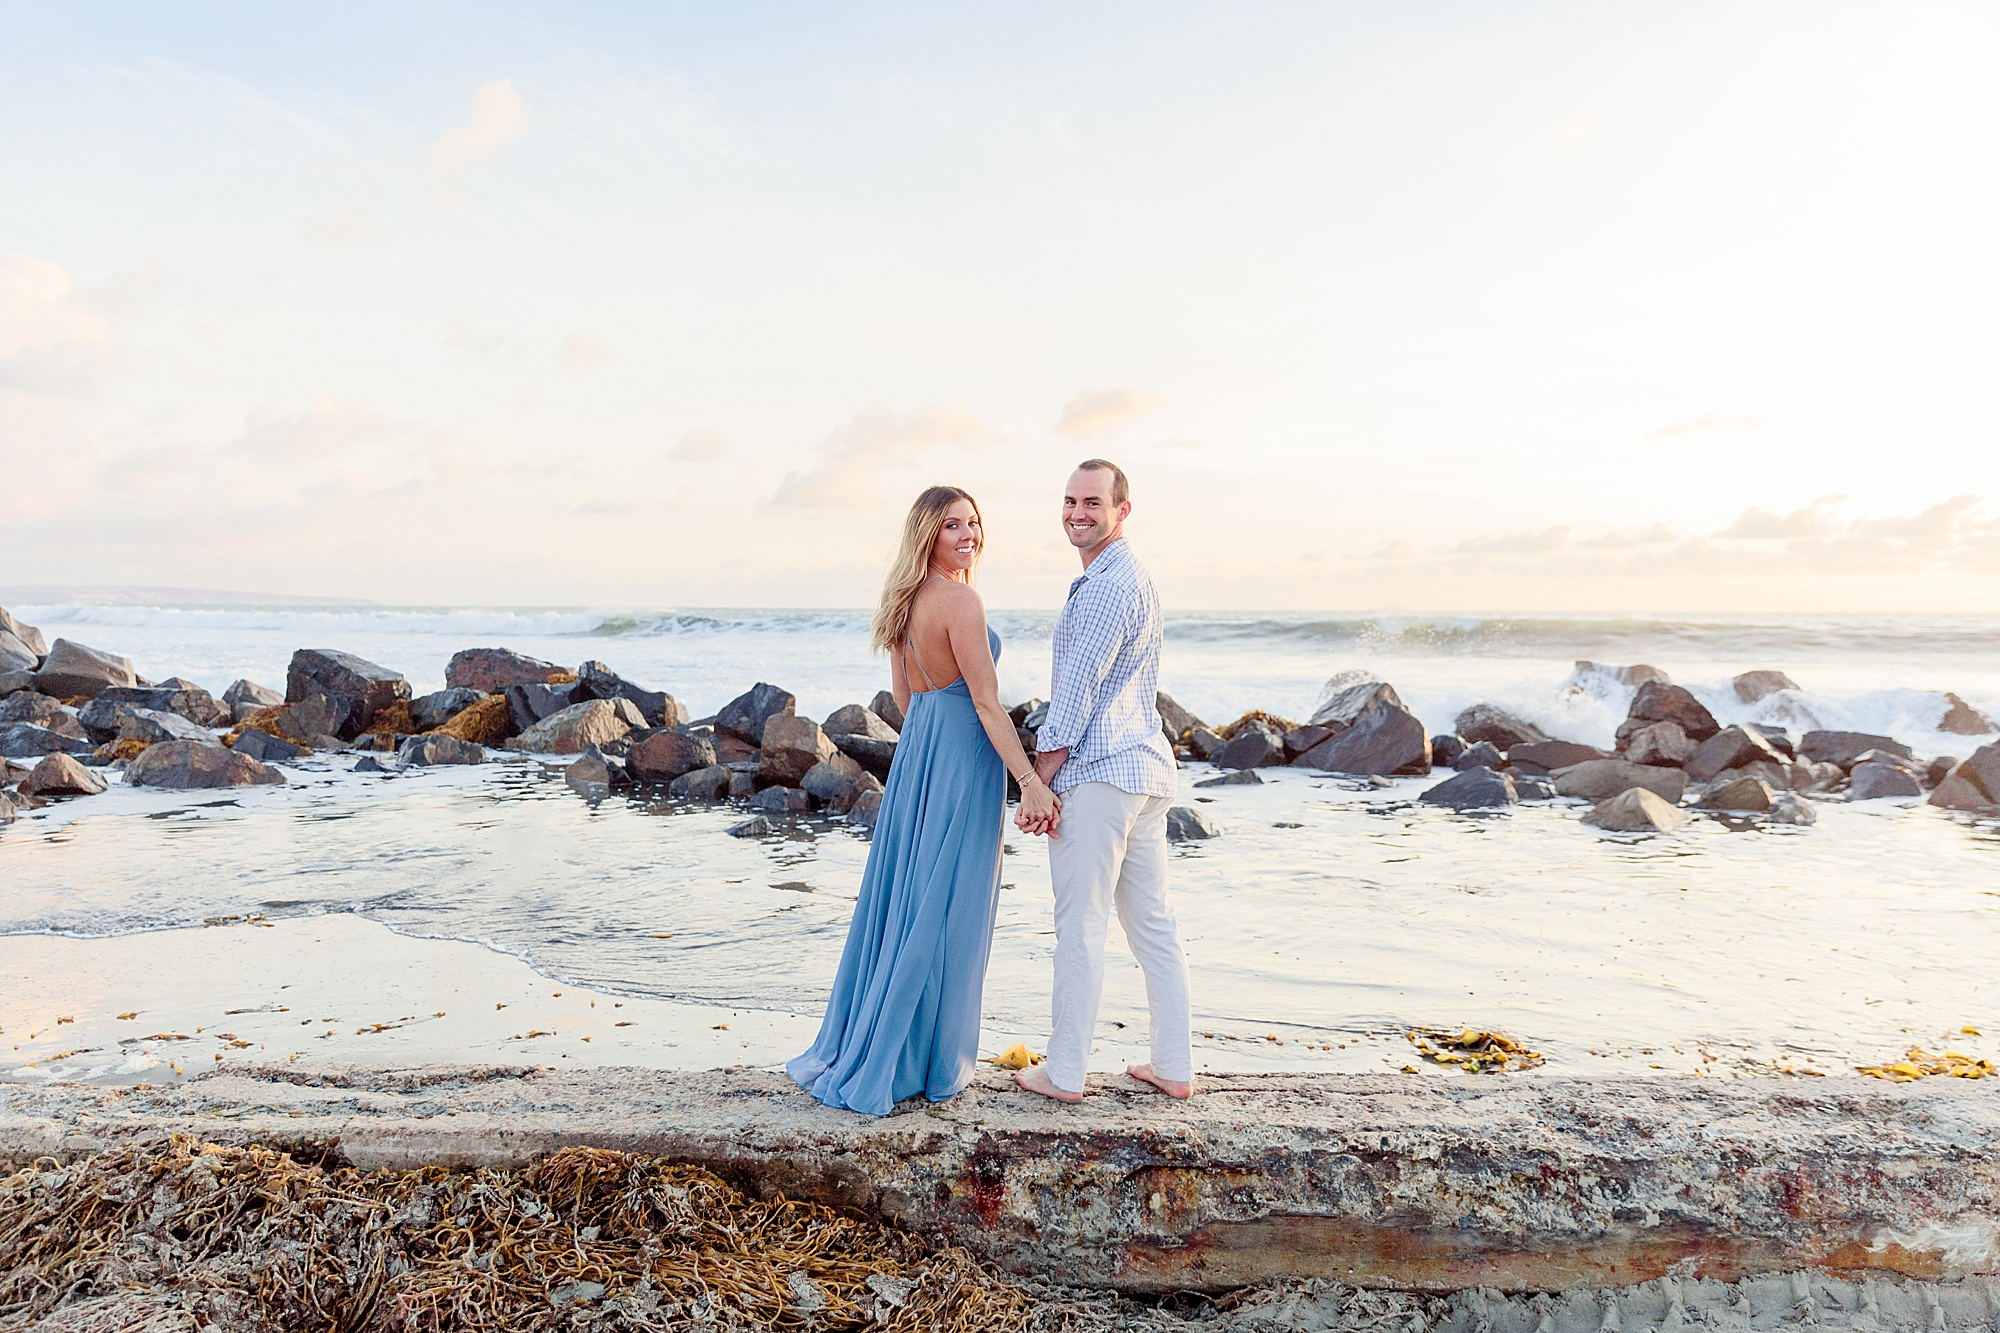 San Diego Photographers | Engagement Photography San Diego